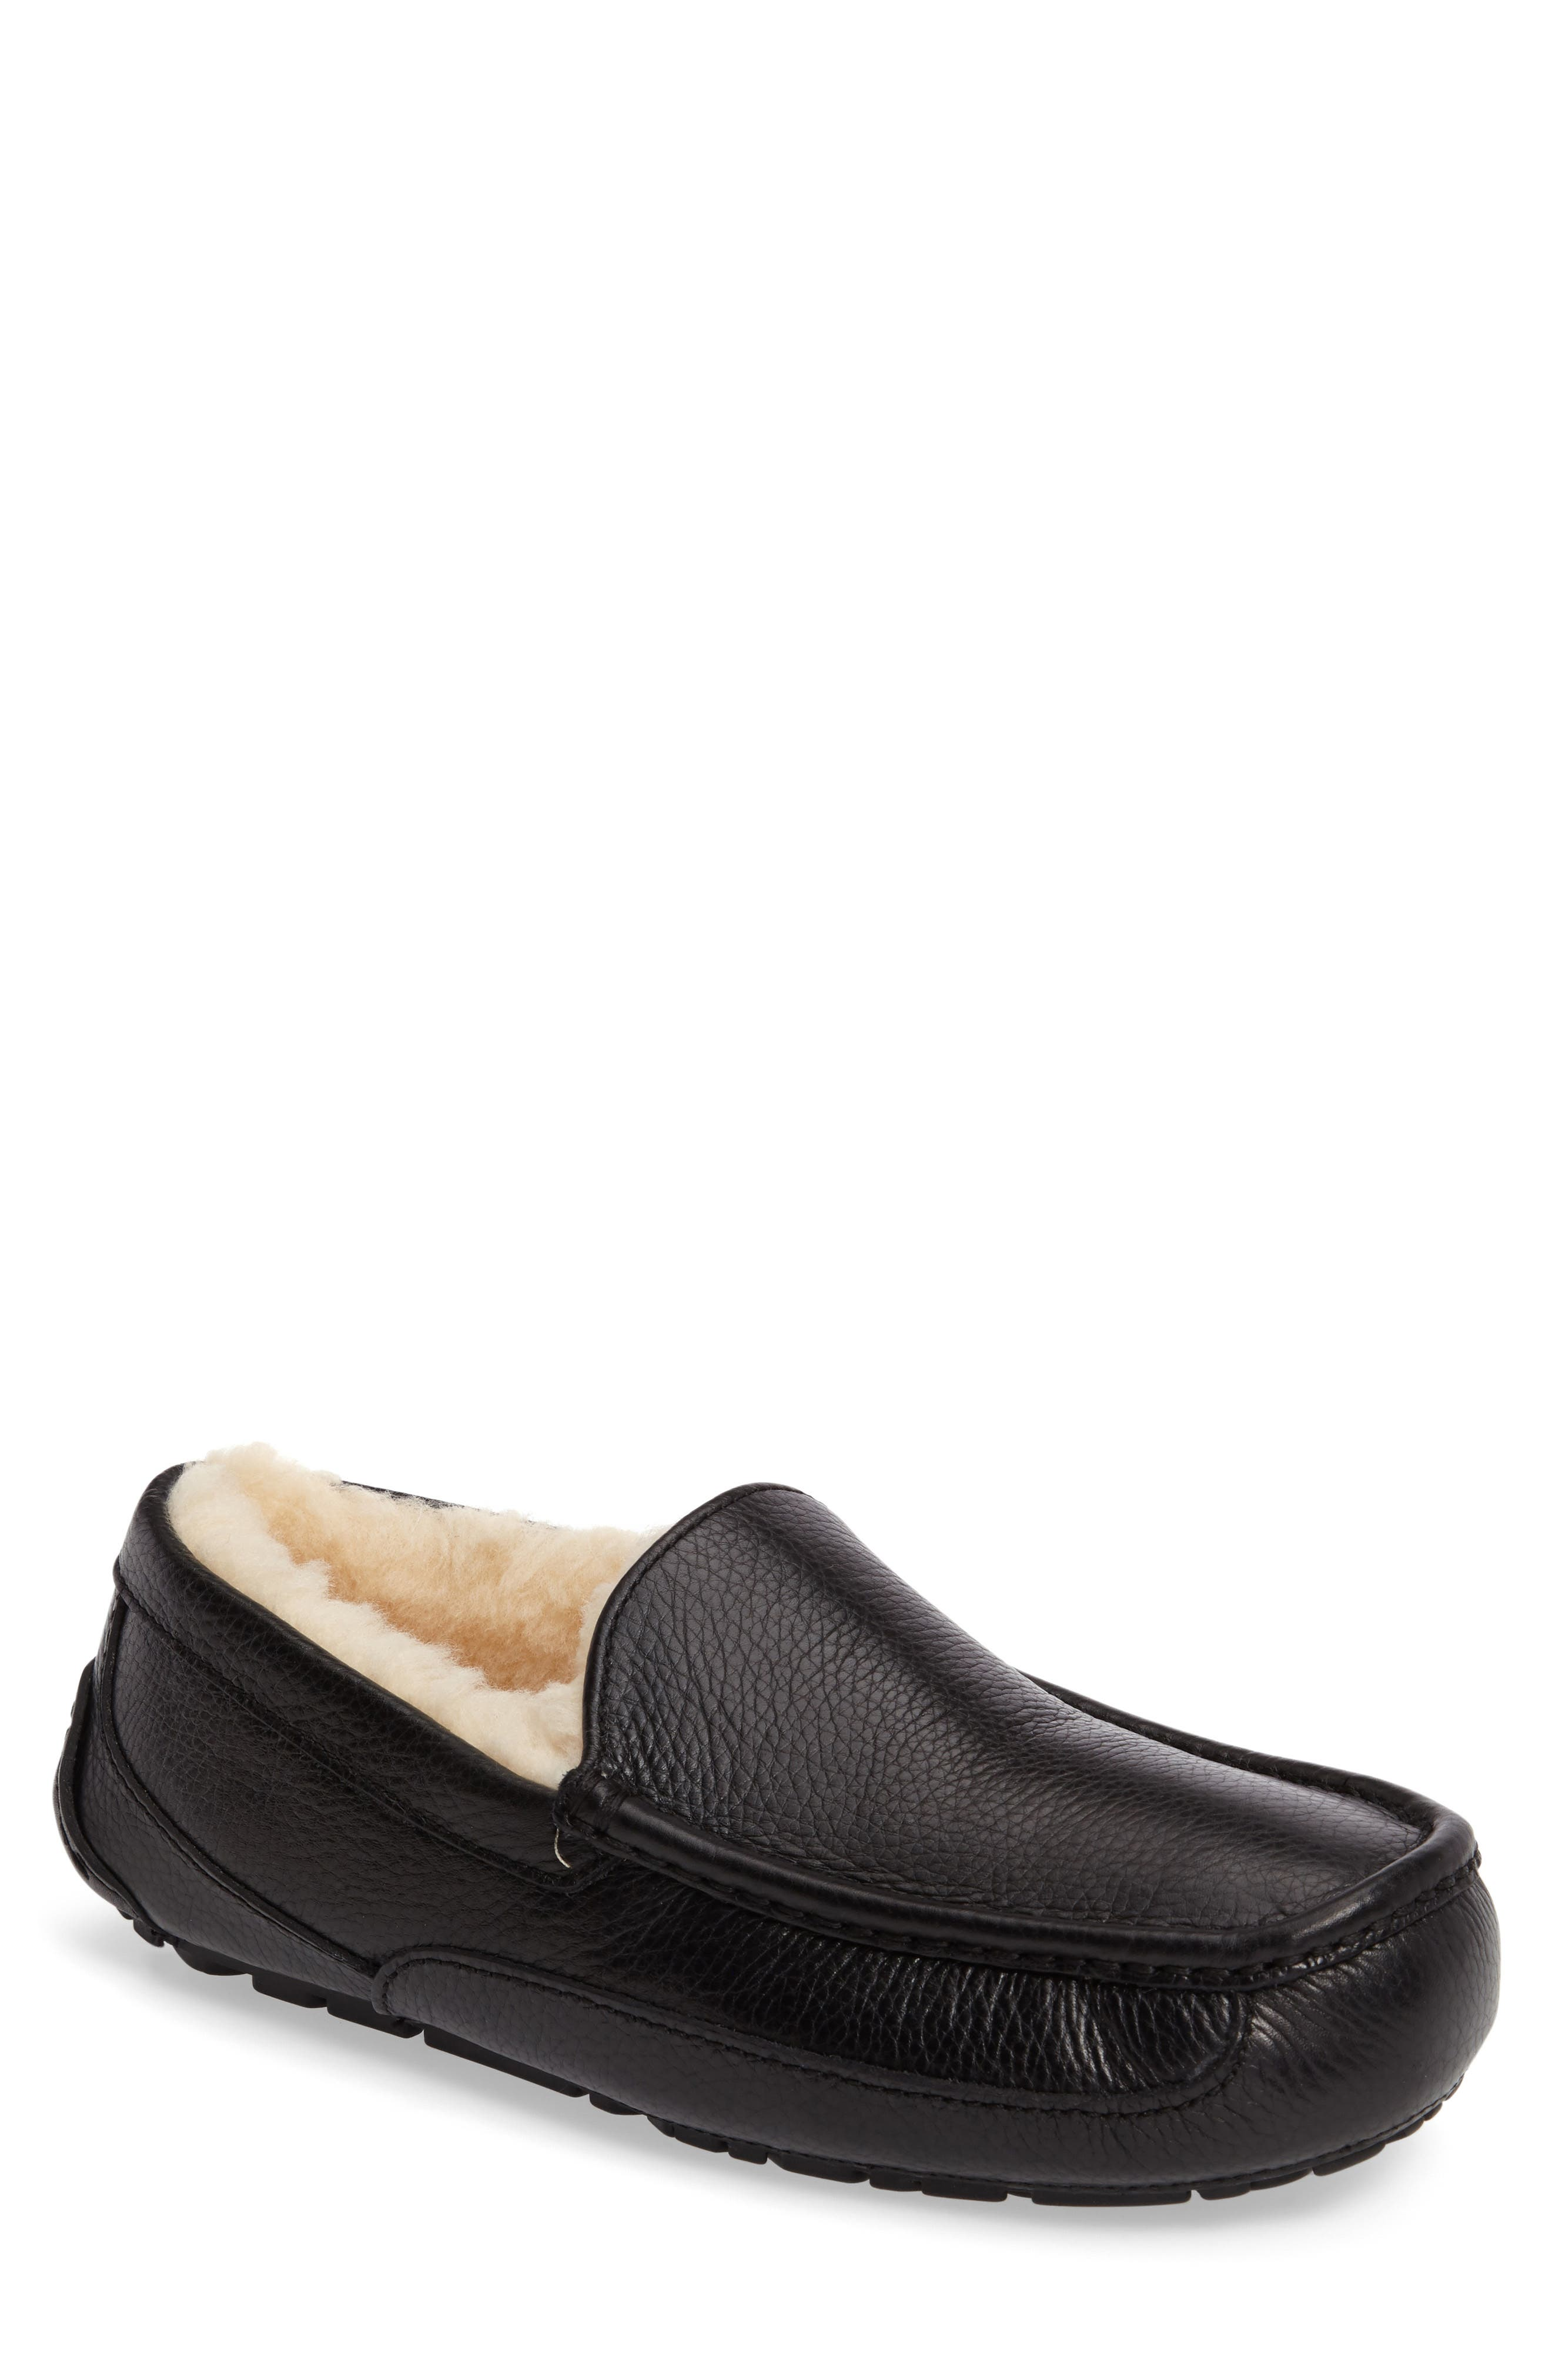 Ascot Leather Slipper,                             Main thumbnail 1, color,                             BLACK